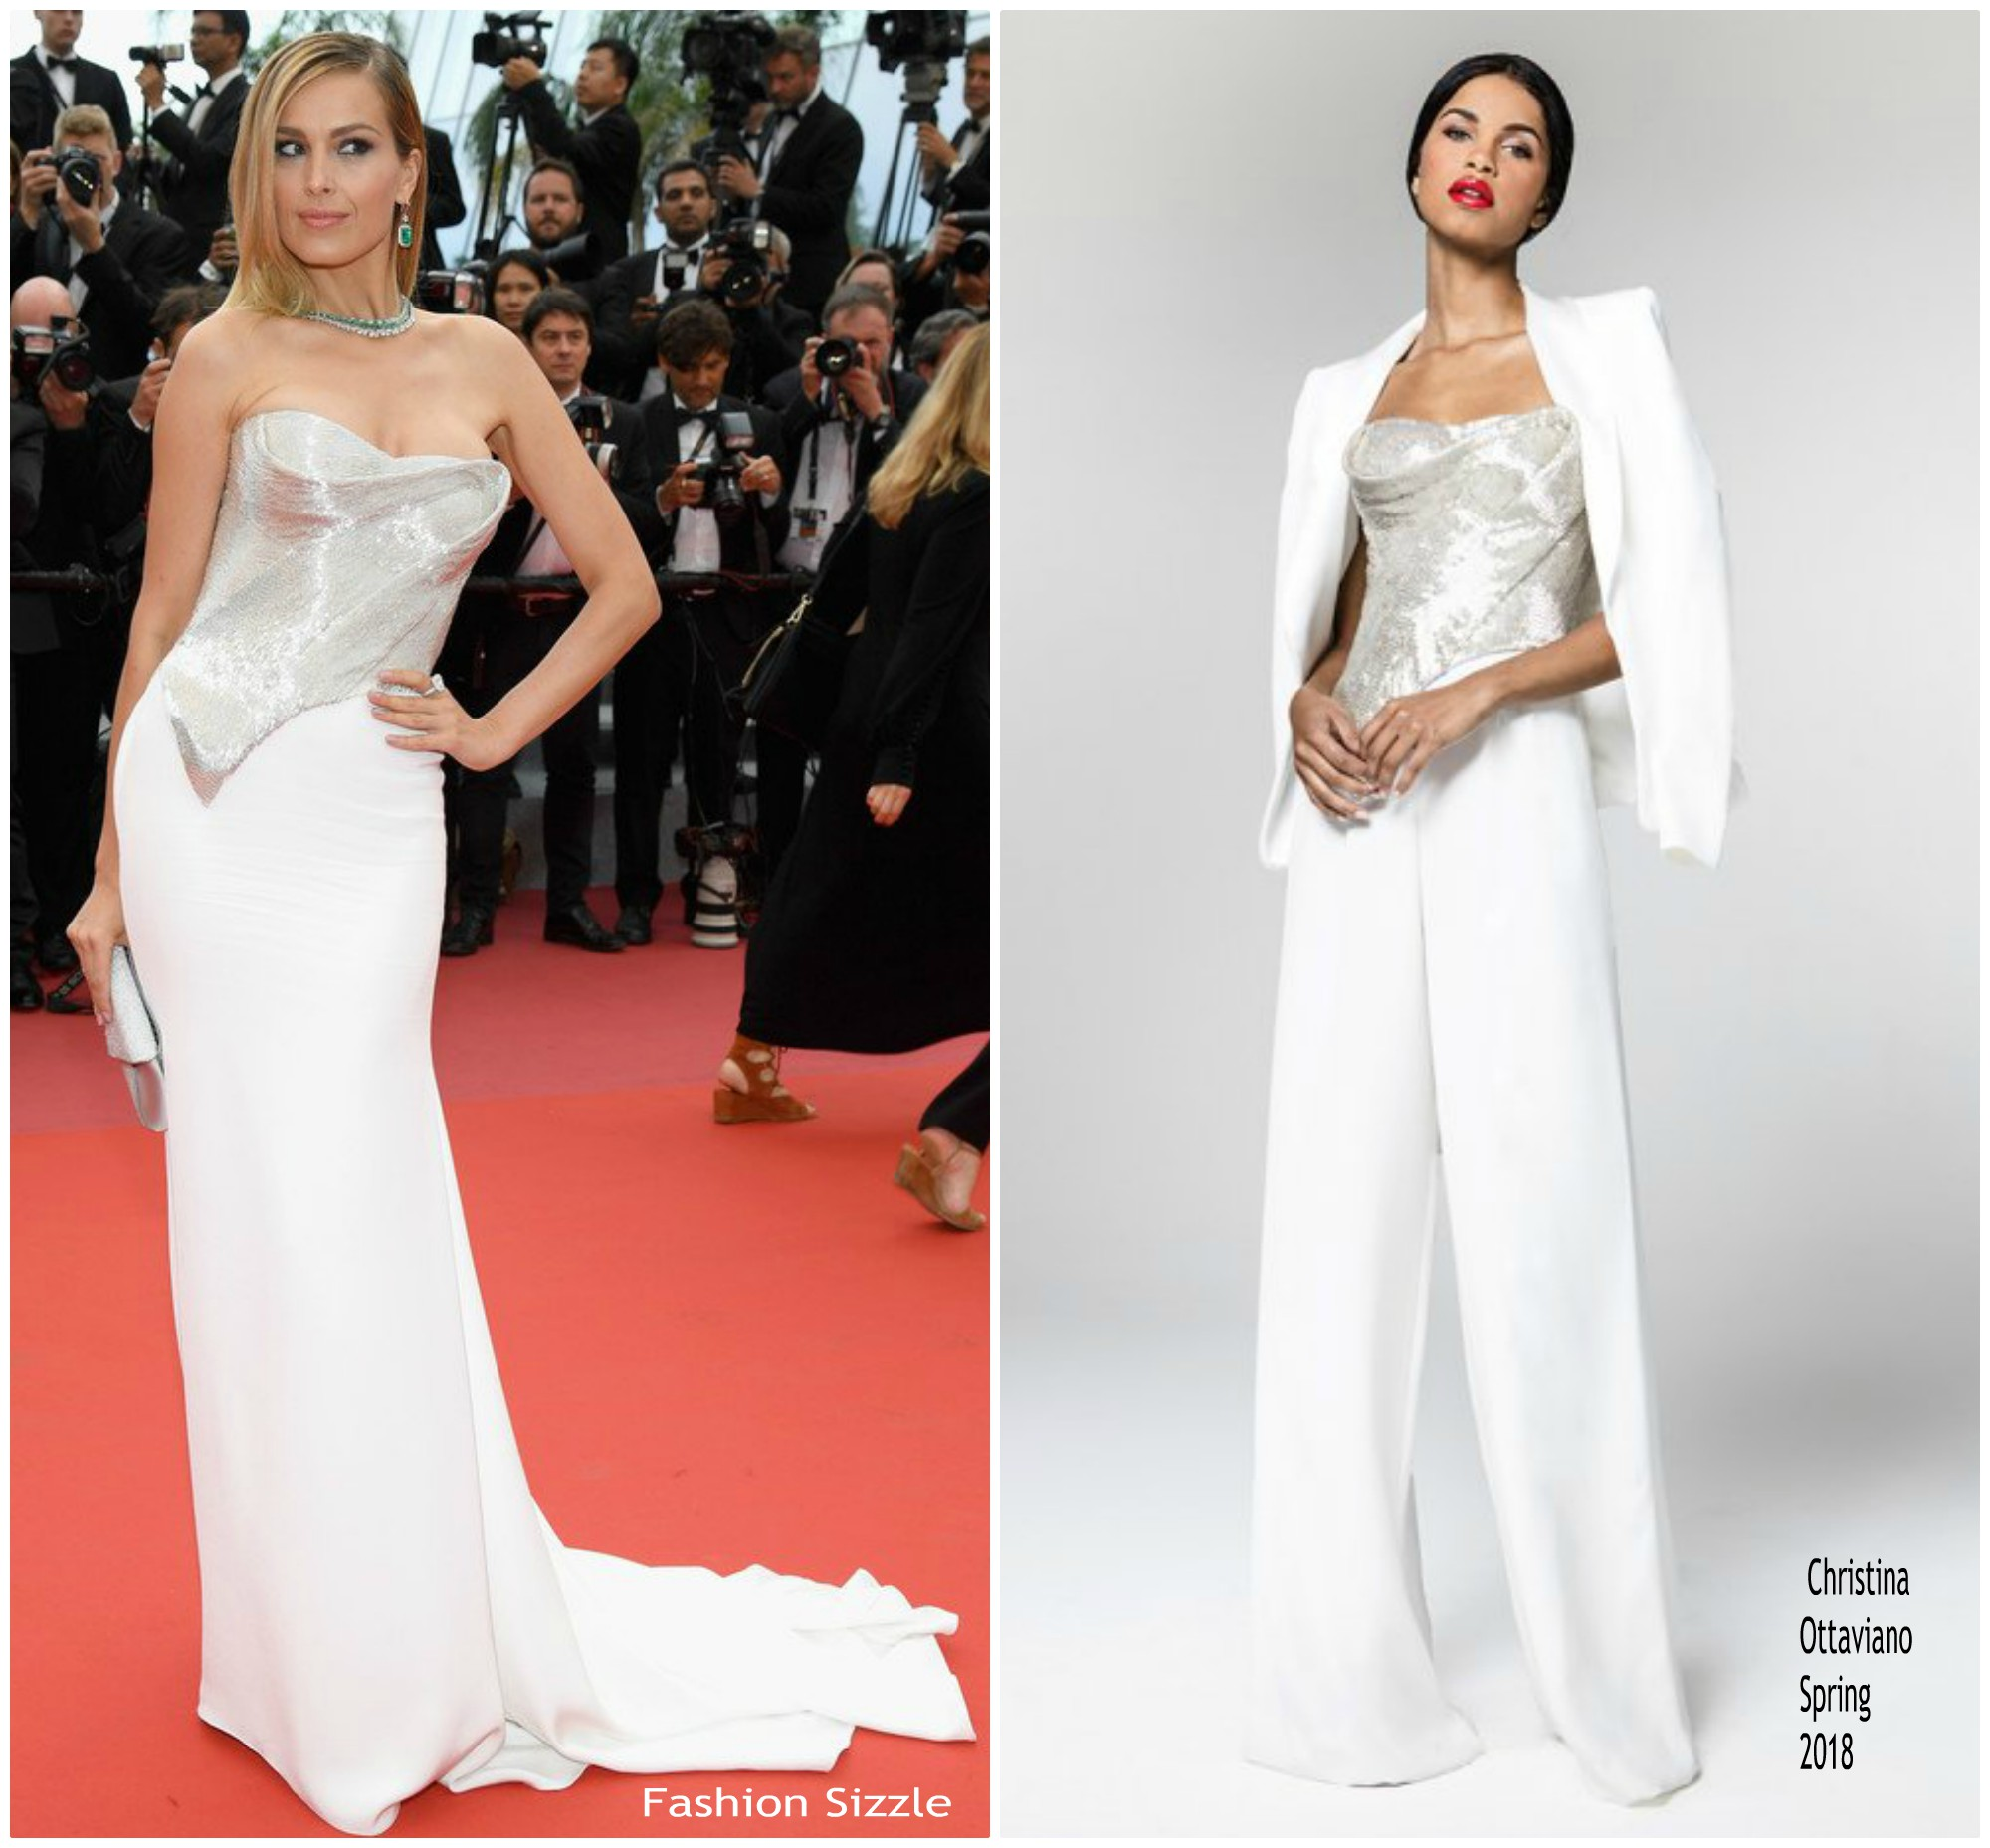 petra-nemcova-in-christina-ottaviano-sorry-angel-plair-aimer-et-courir-vite-cannes-film-festival-premiere